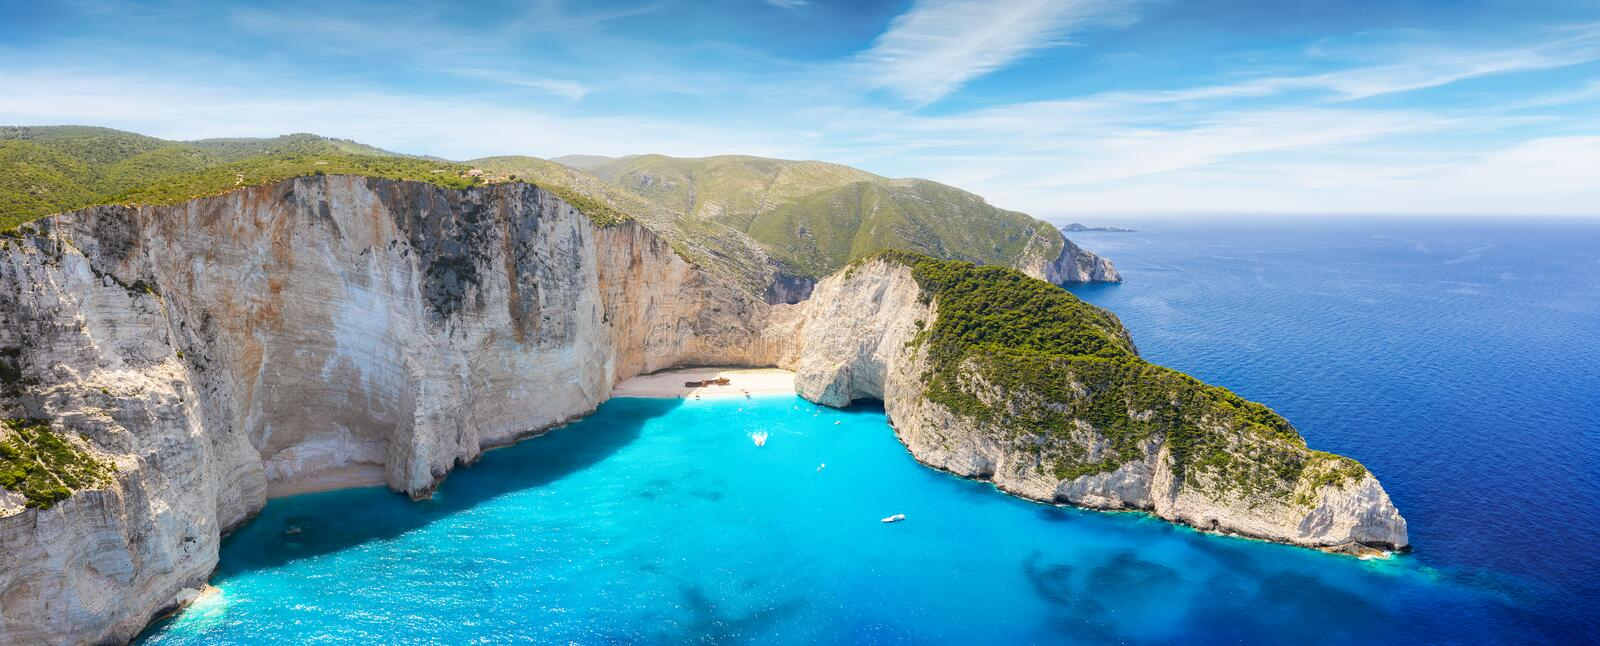 Aerial panoramic view of the shipwreck beach at Zakynthos island, Ionian Sea, Greece royalty free stock photo